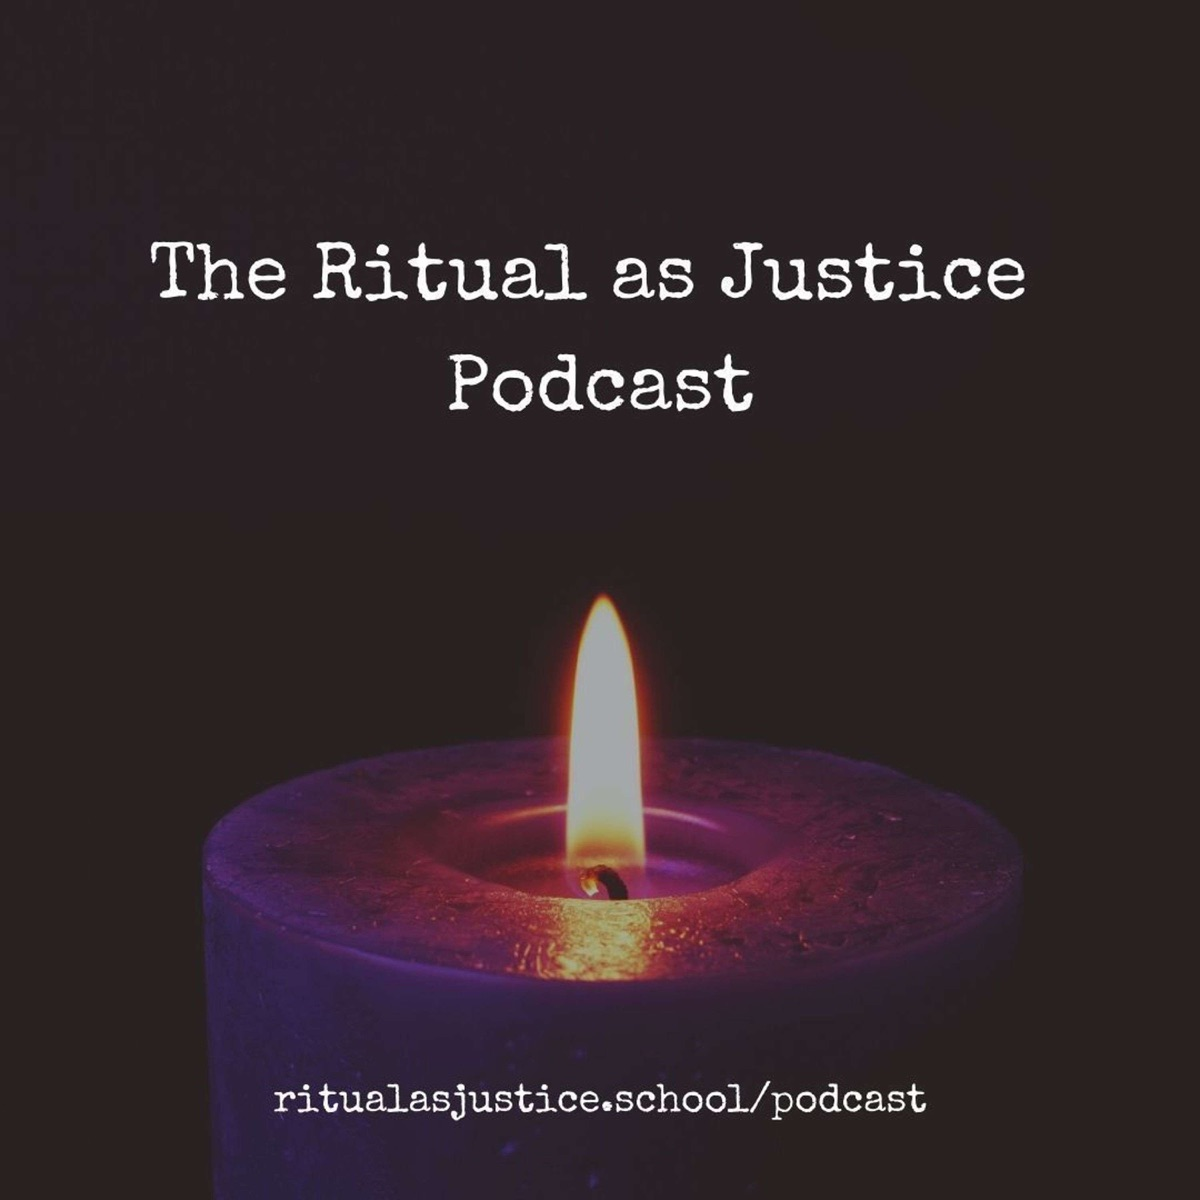 The Ritual as Justice Podcast